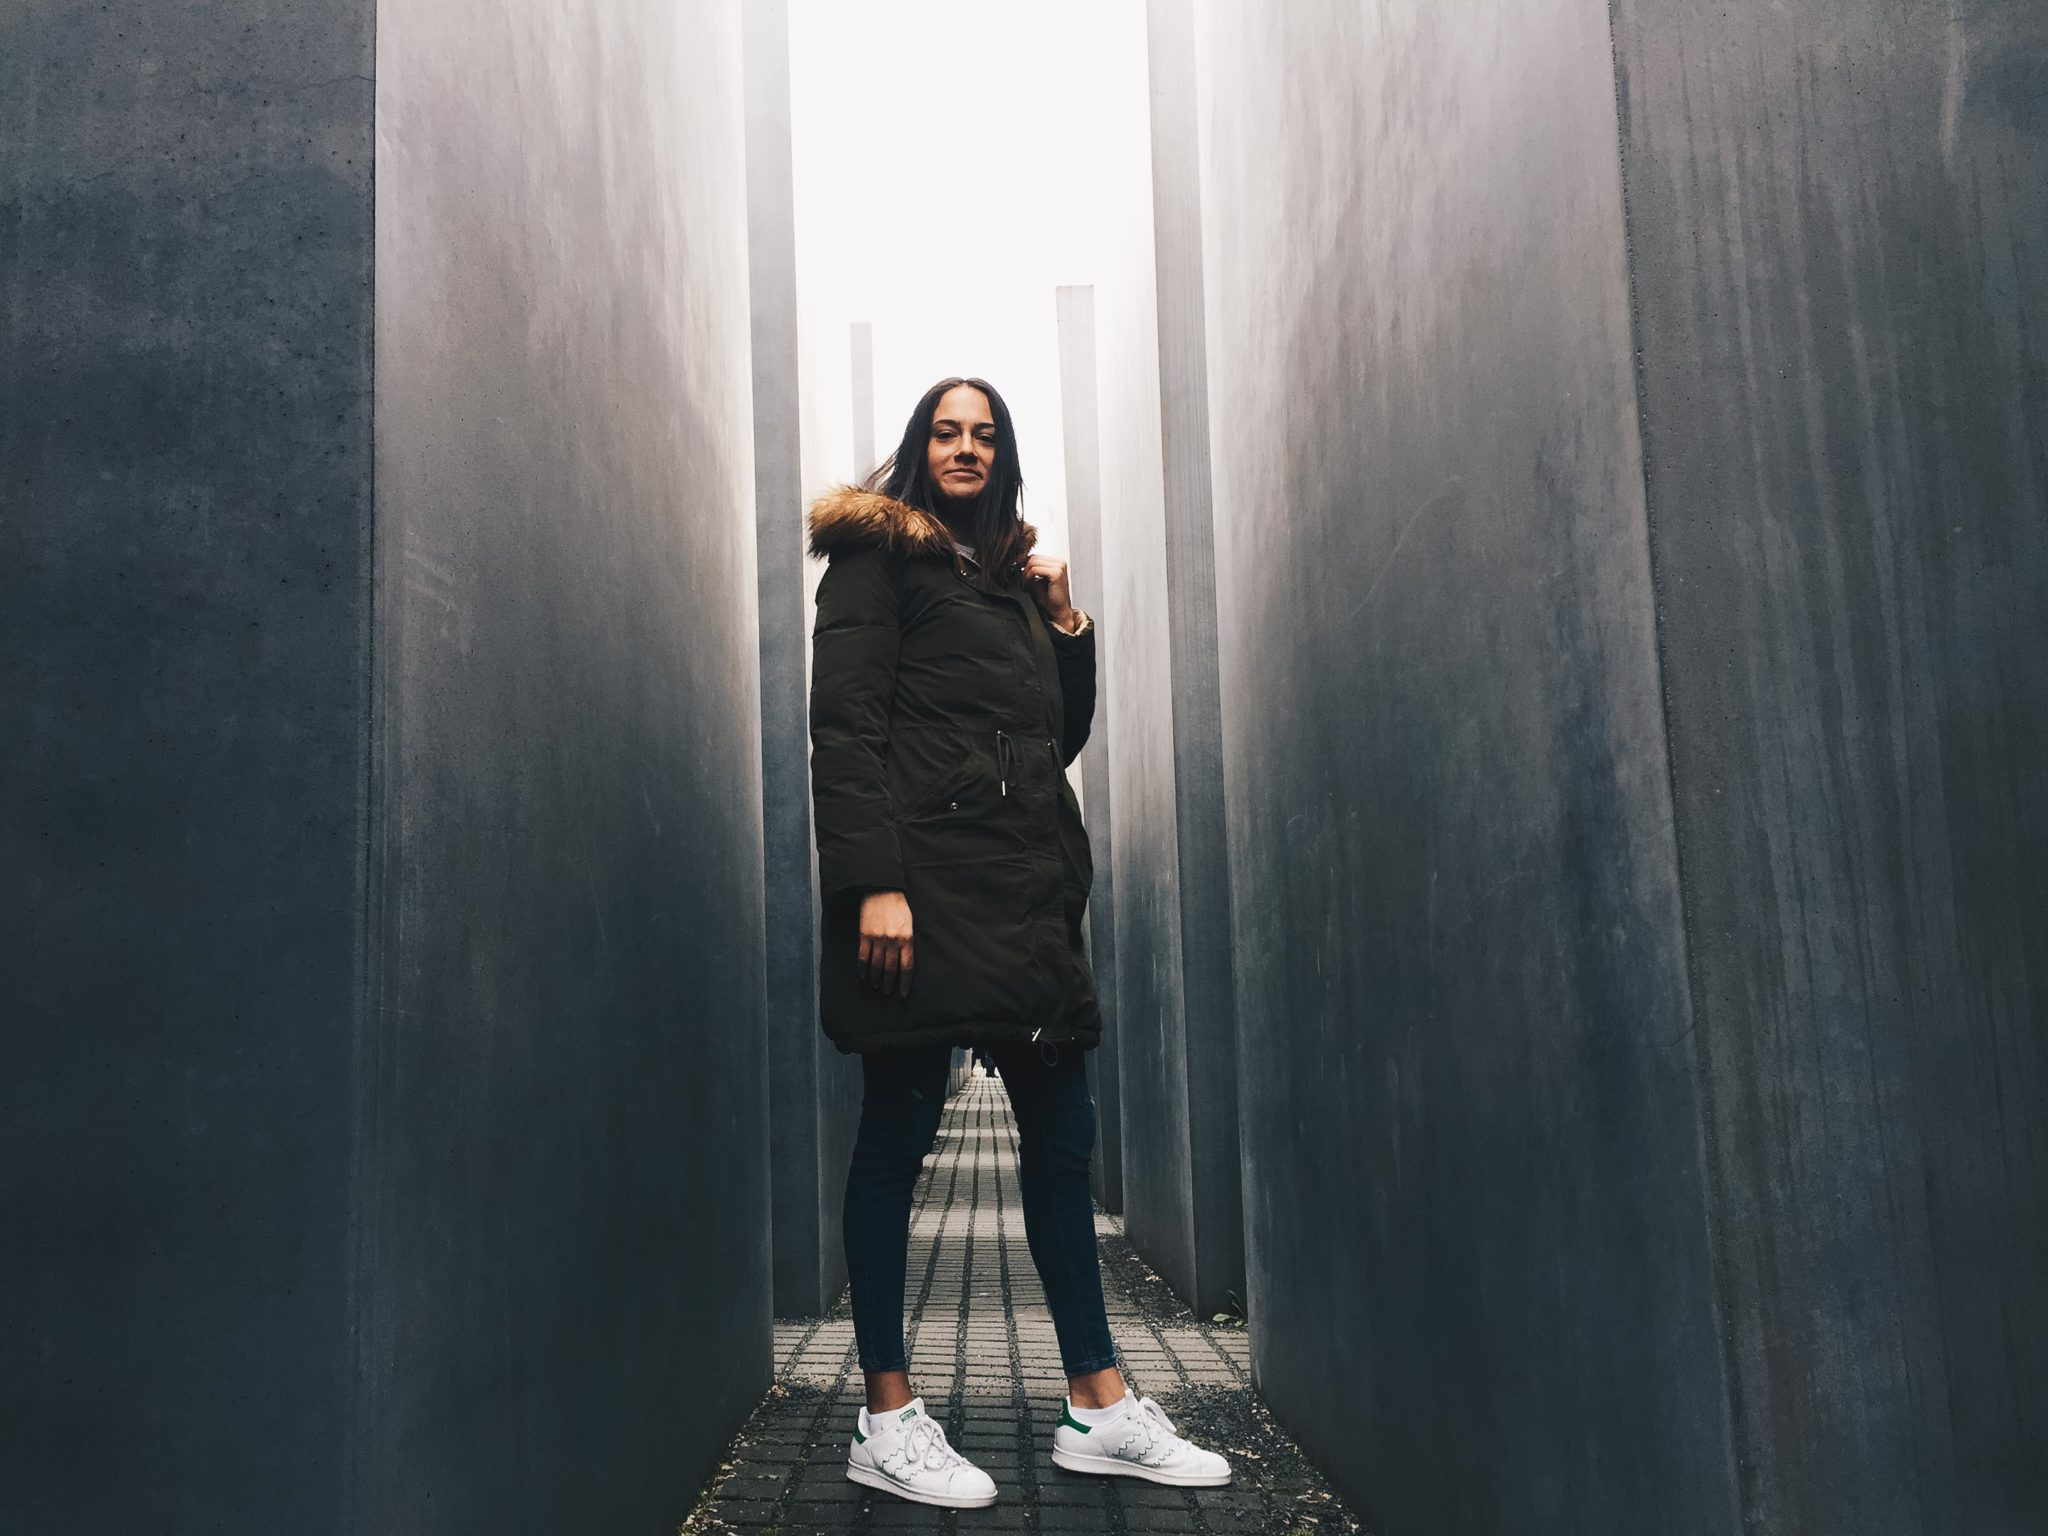 Bulgarian blogger Michaella from Quite a Jewish monument / Looker in Berlin, May 2017